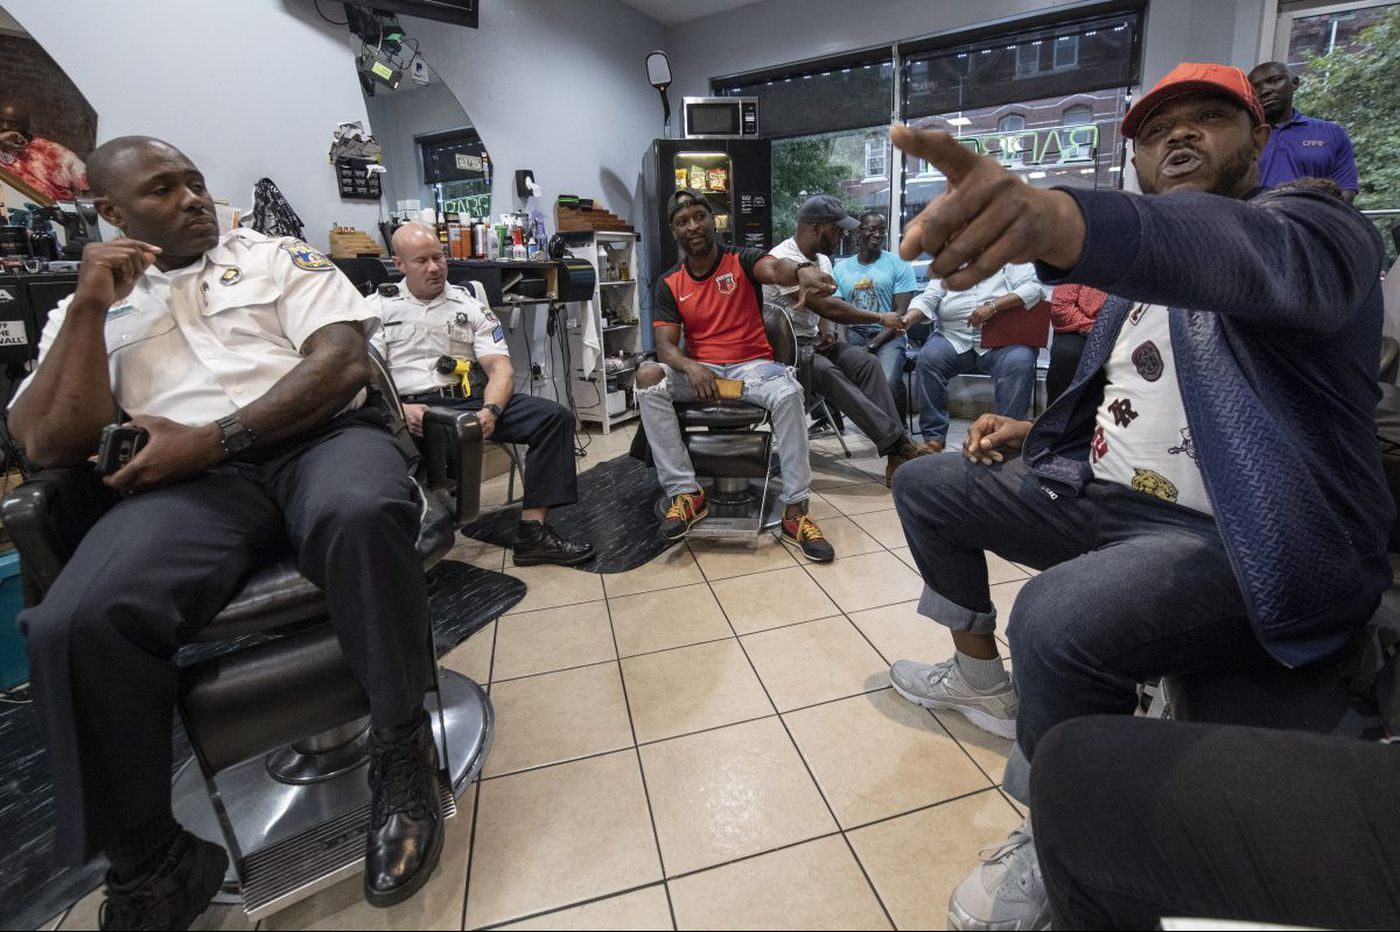 Cops and community members have found a new place to engage: The barbershop